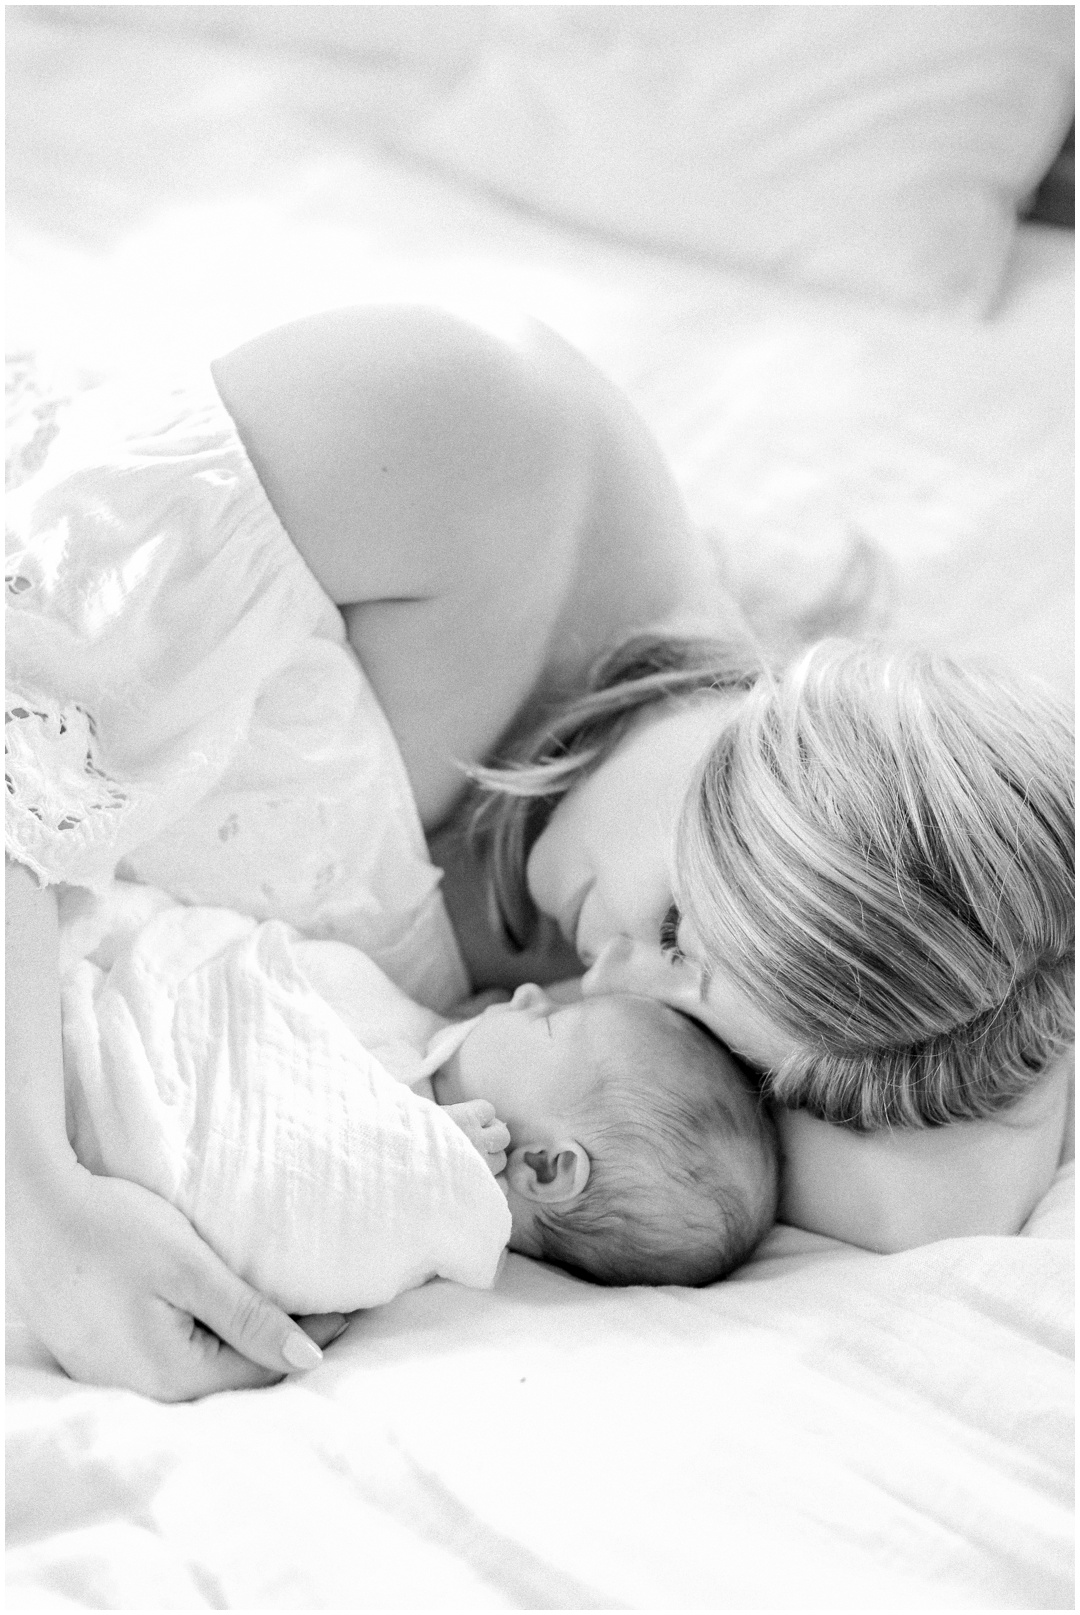 Newport_Beach_Newborn_Light_Airy_Natural_Photographer_Newport_Beach_Photographer_Orange_County_Family_Photographer_Cori_Kleckner_Photography_Huntington_Beach_Photographer_Family_OC_Newborn_Megan_Bradley_Schueneman_Charlie_Schueneman_Dean__3601.jpg